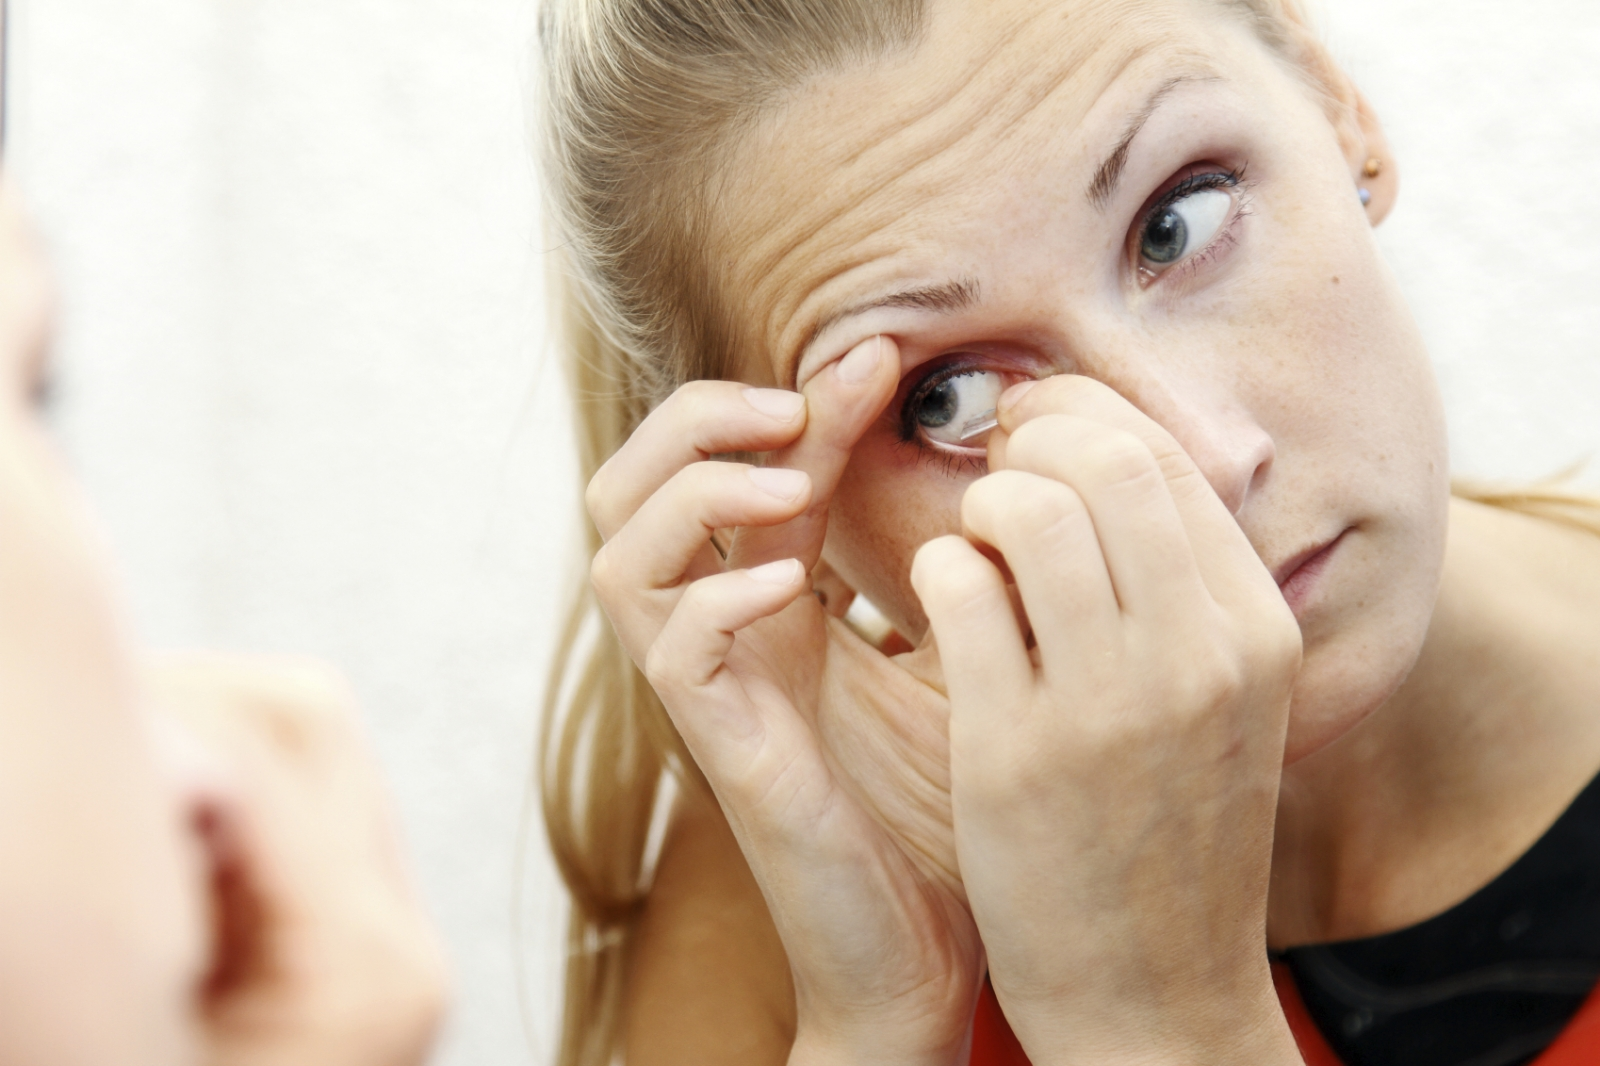 A woman struggles to apply contact lenses